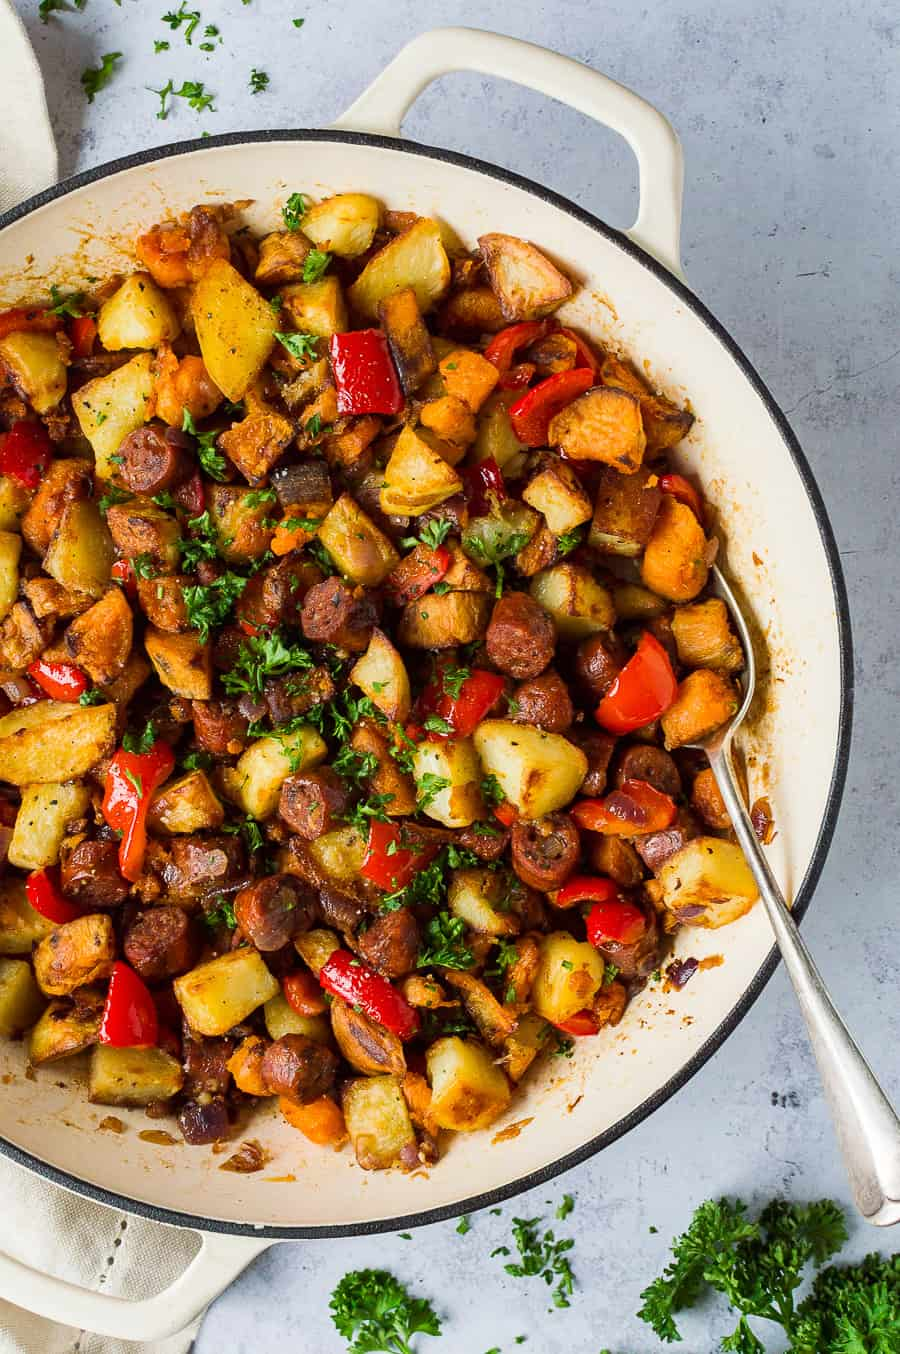 vegan chorizo and potato hash in a white pan on a grey background.